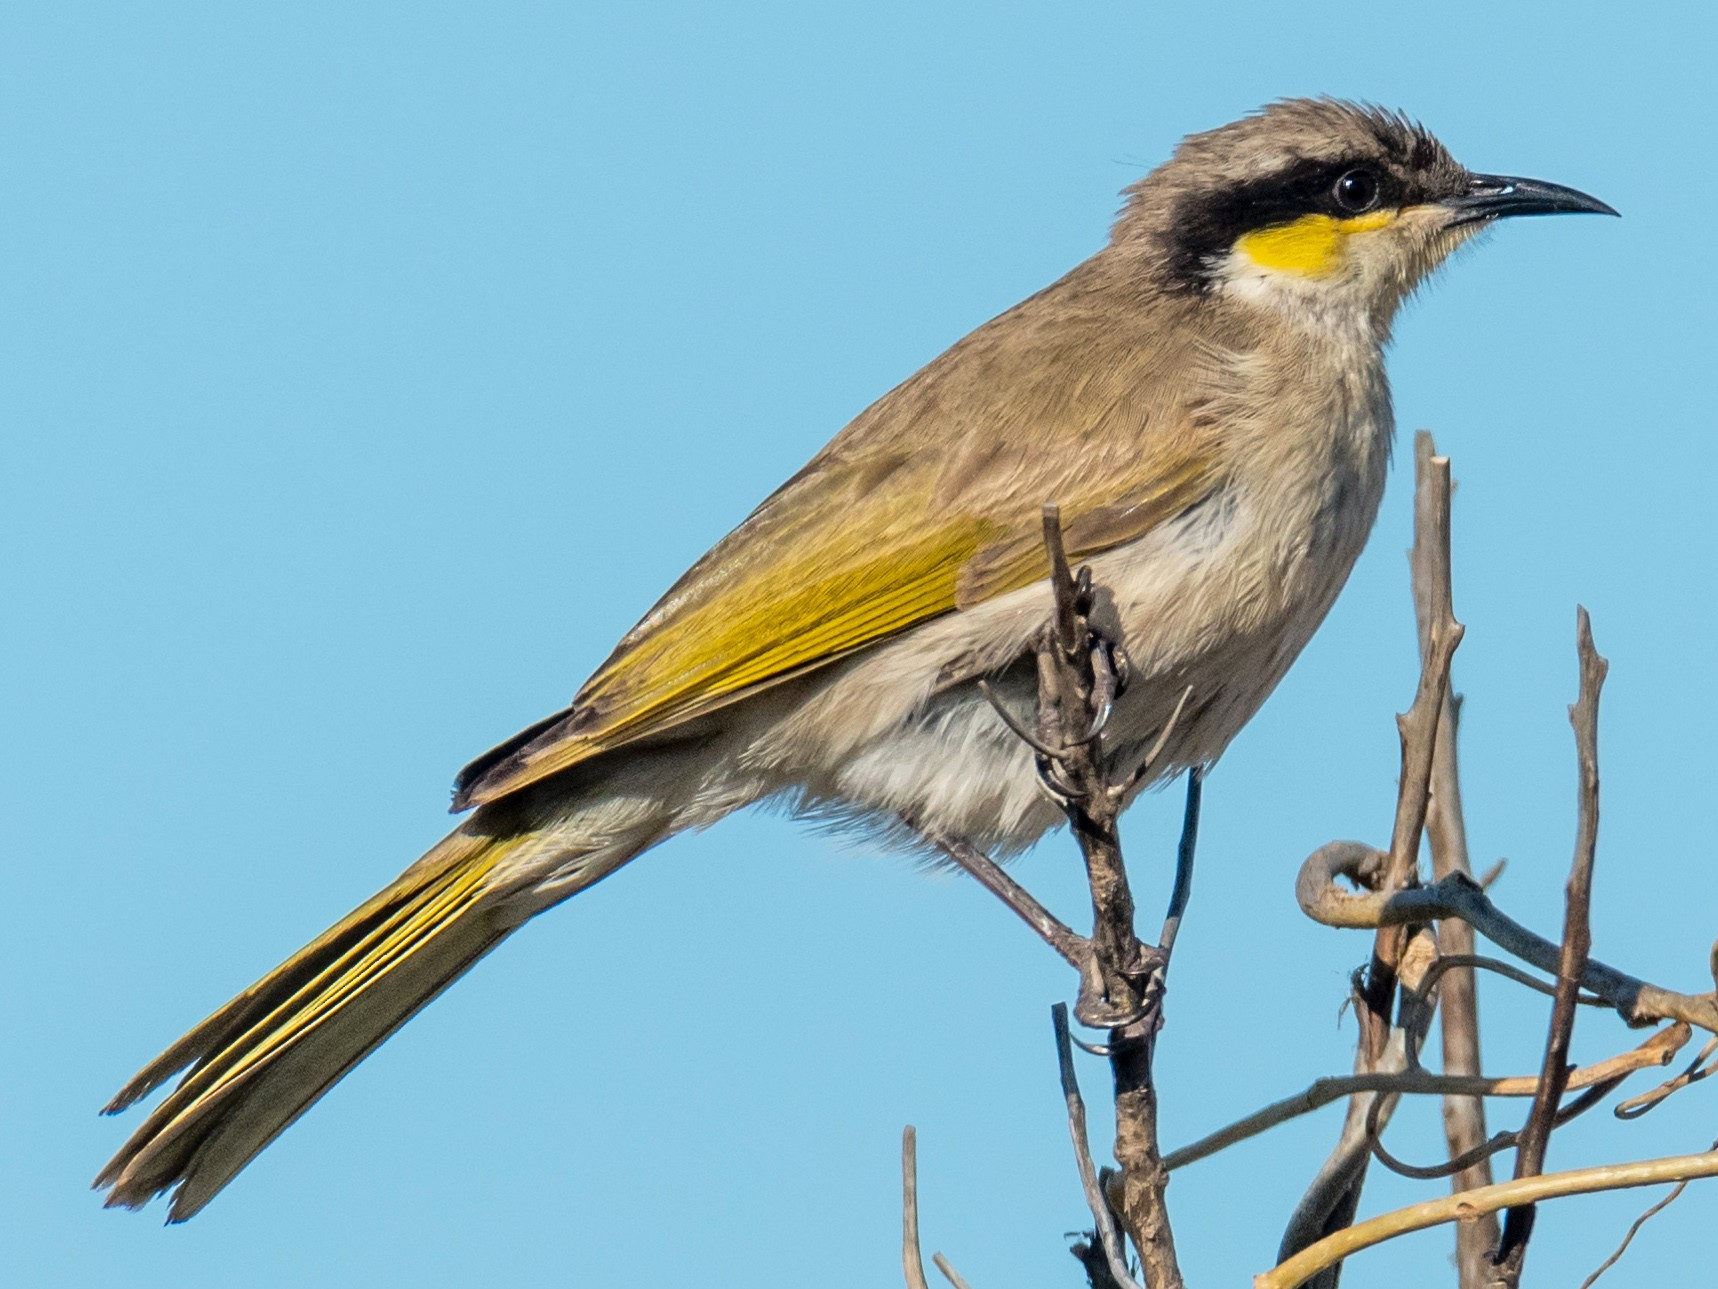 Singing Honeyeater - Raphaël Nussbaumer